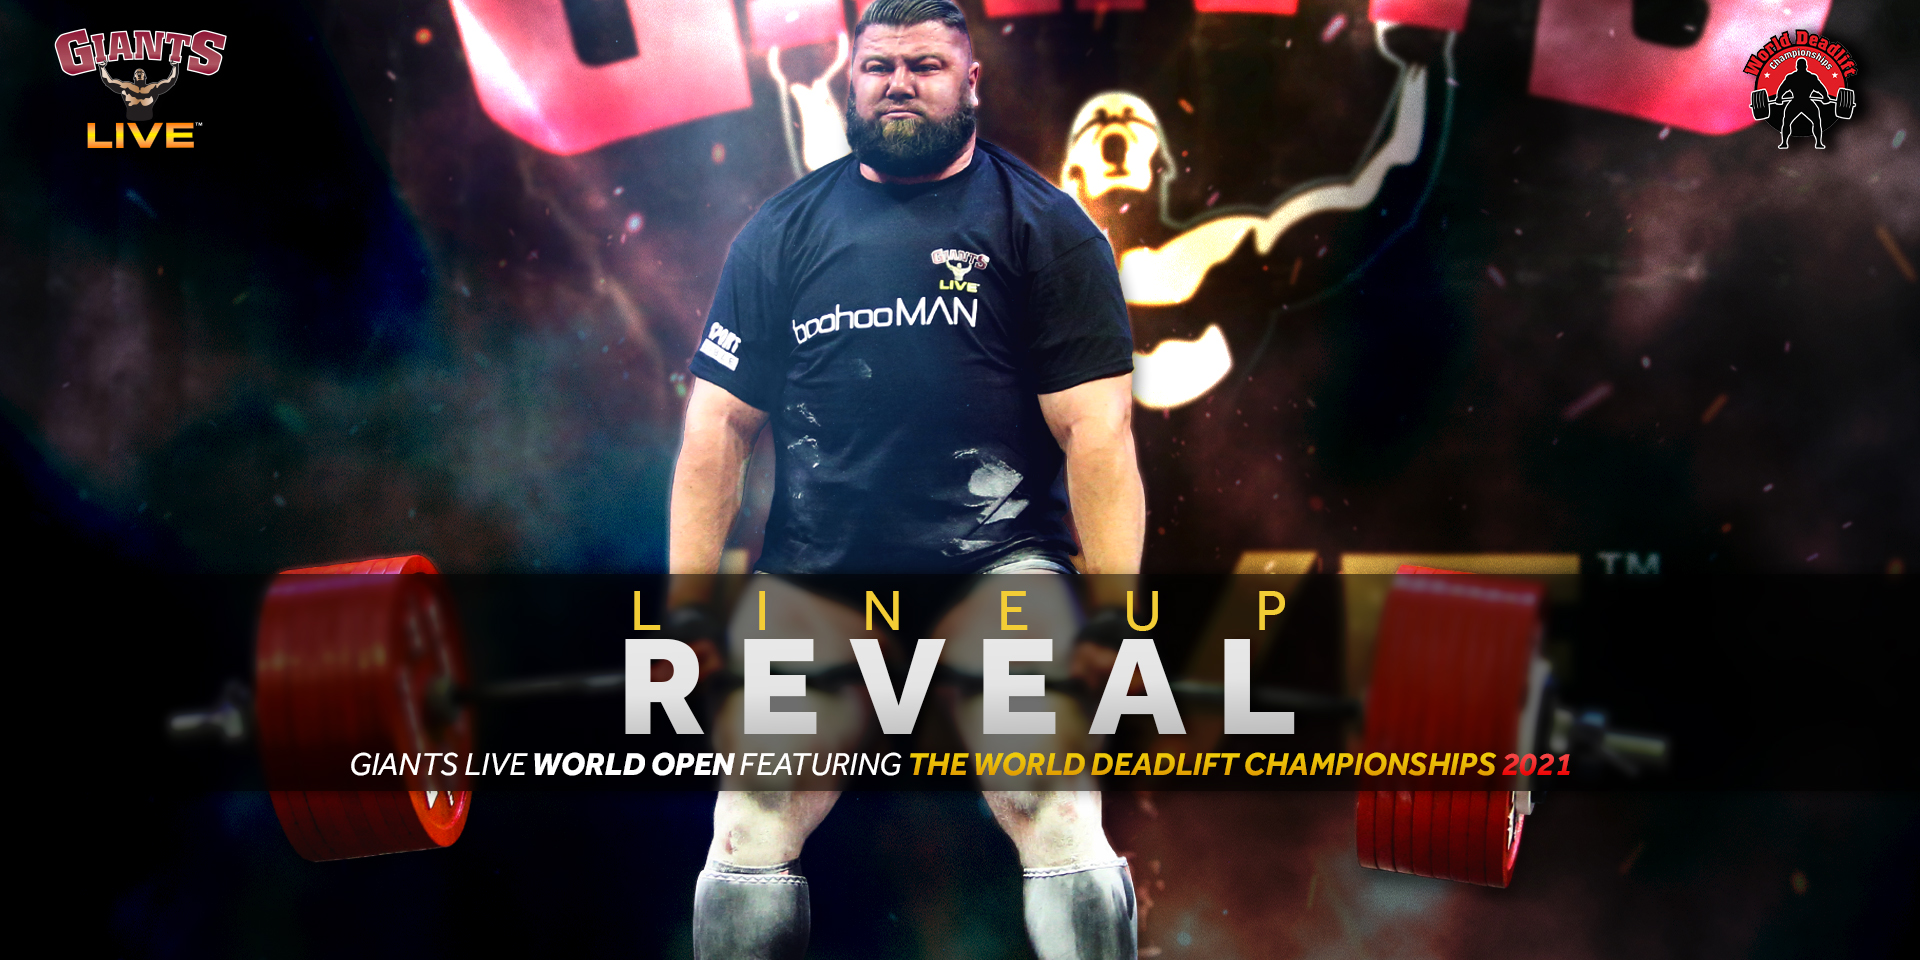 The Giants return to Manchester in 2021 for the Giants Live World Open including the World Deadlift Championships!